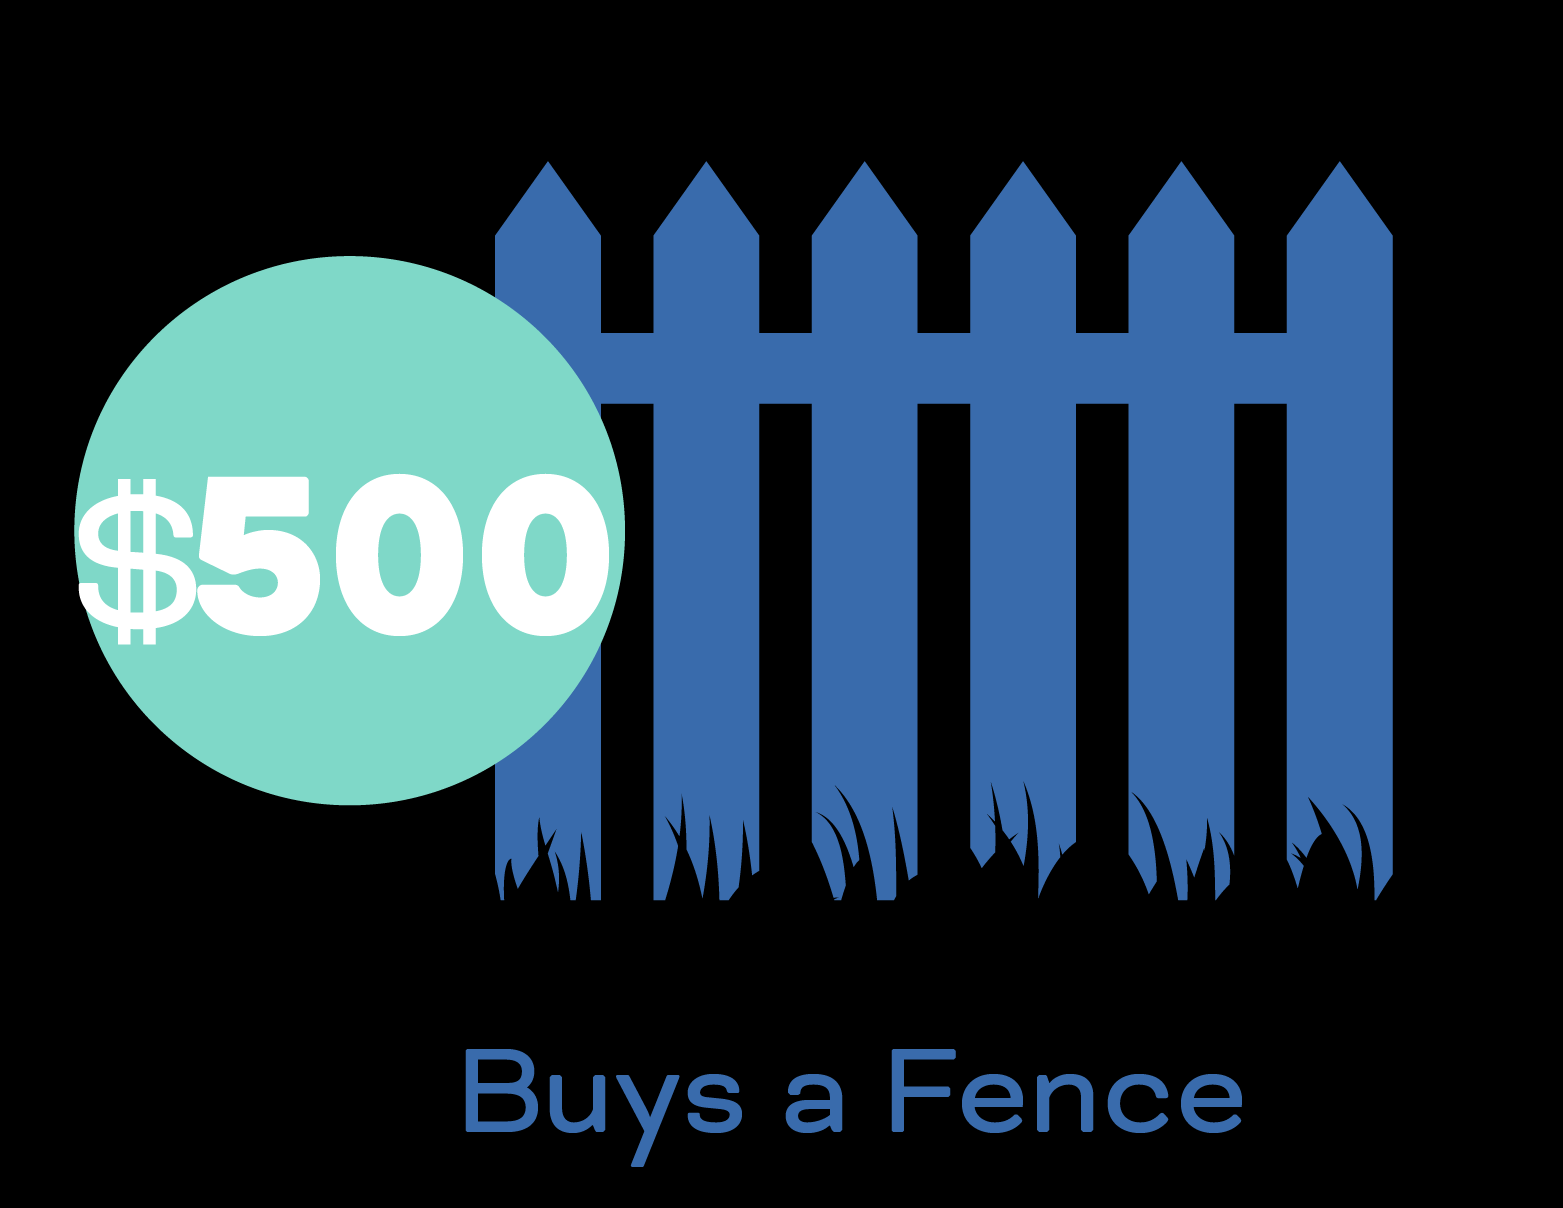 $500 buys a fence.